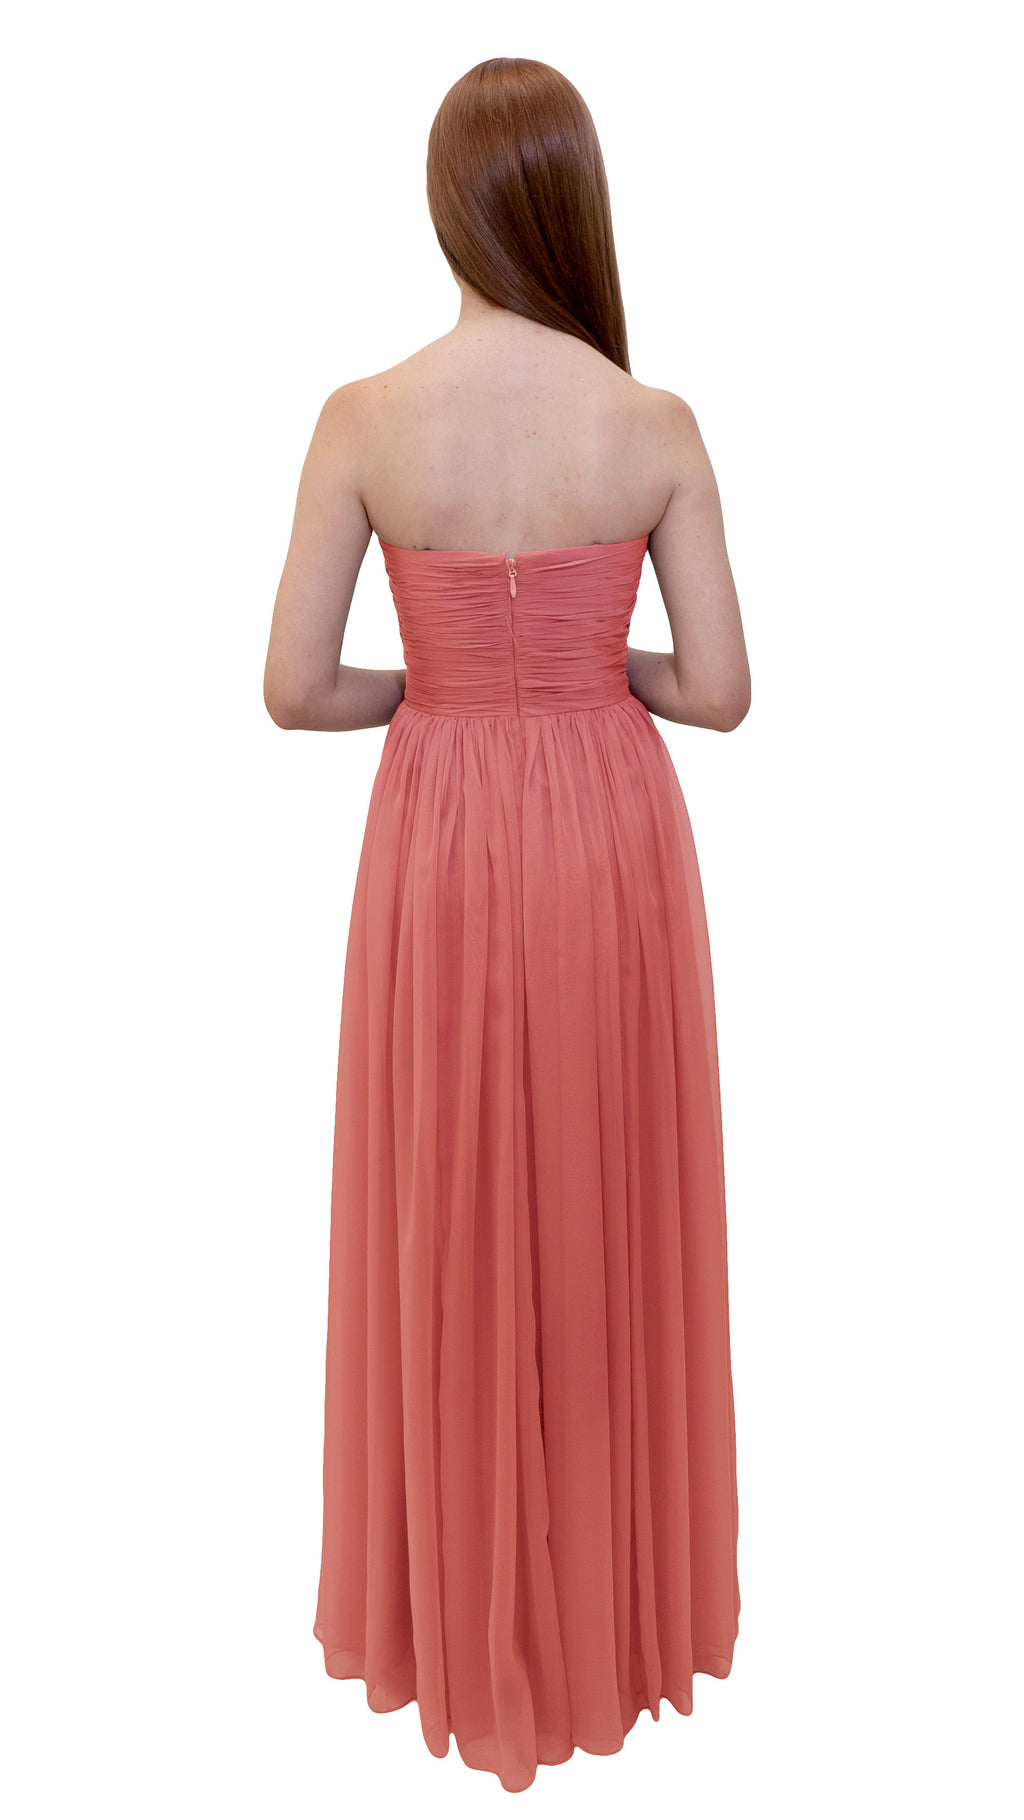 Bariano Gathered Maxi Dress Apricot back